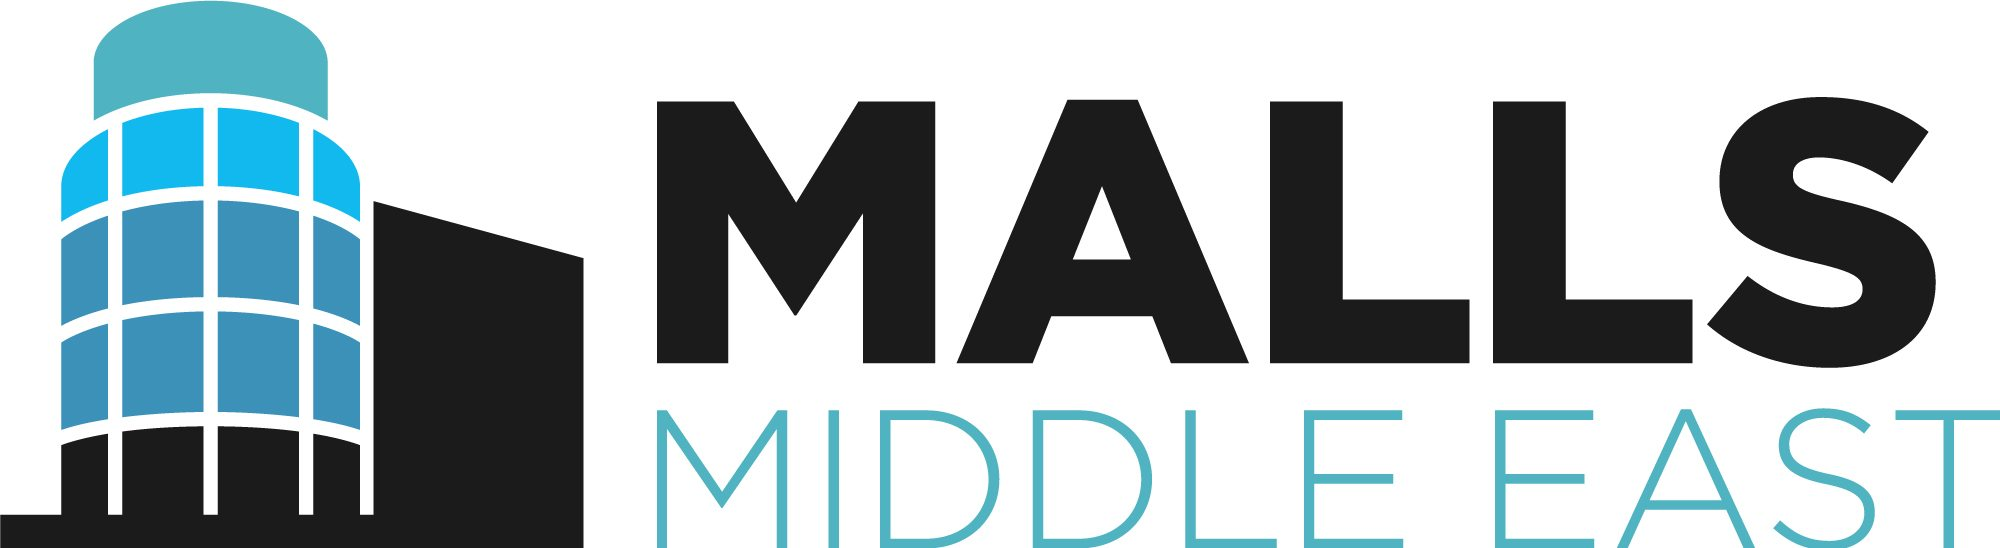 Malls Middle East Conference